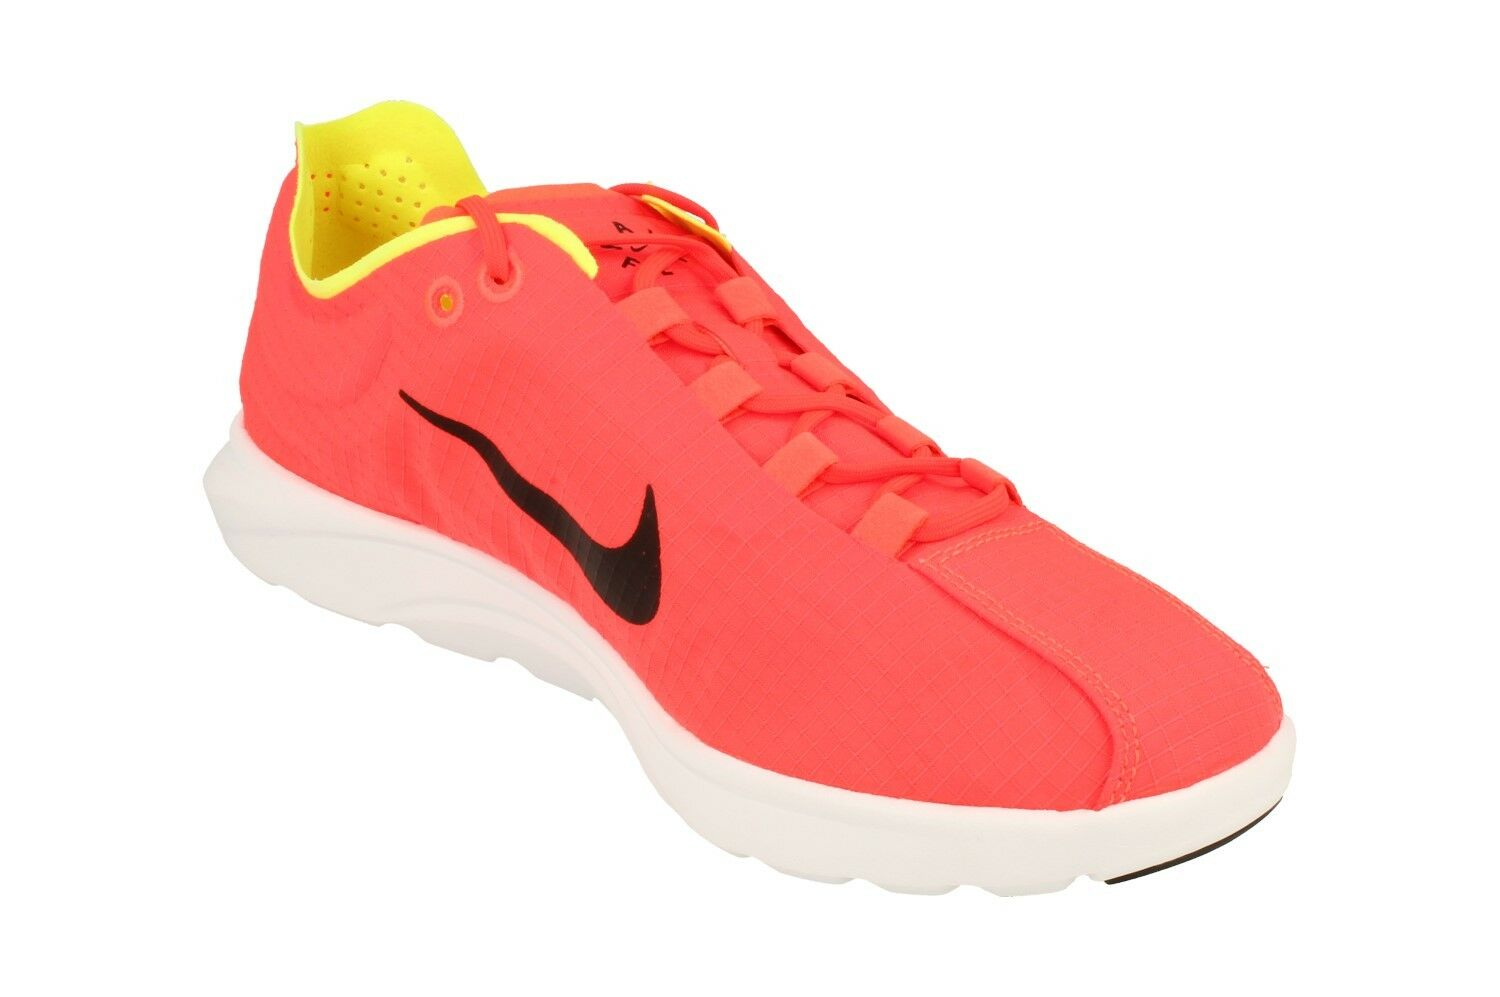 Nike Mayfly Lite 600 SE  Uomo Running Trainers 876188 600 Lite Sneakers Schuhes 897c91